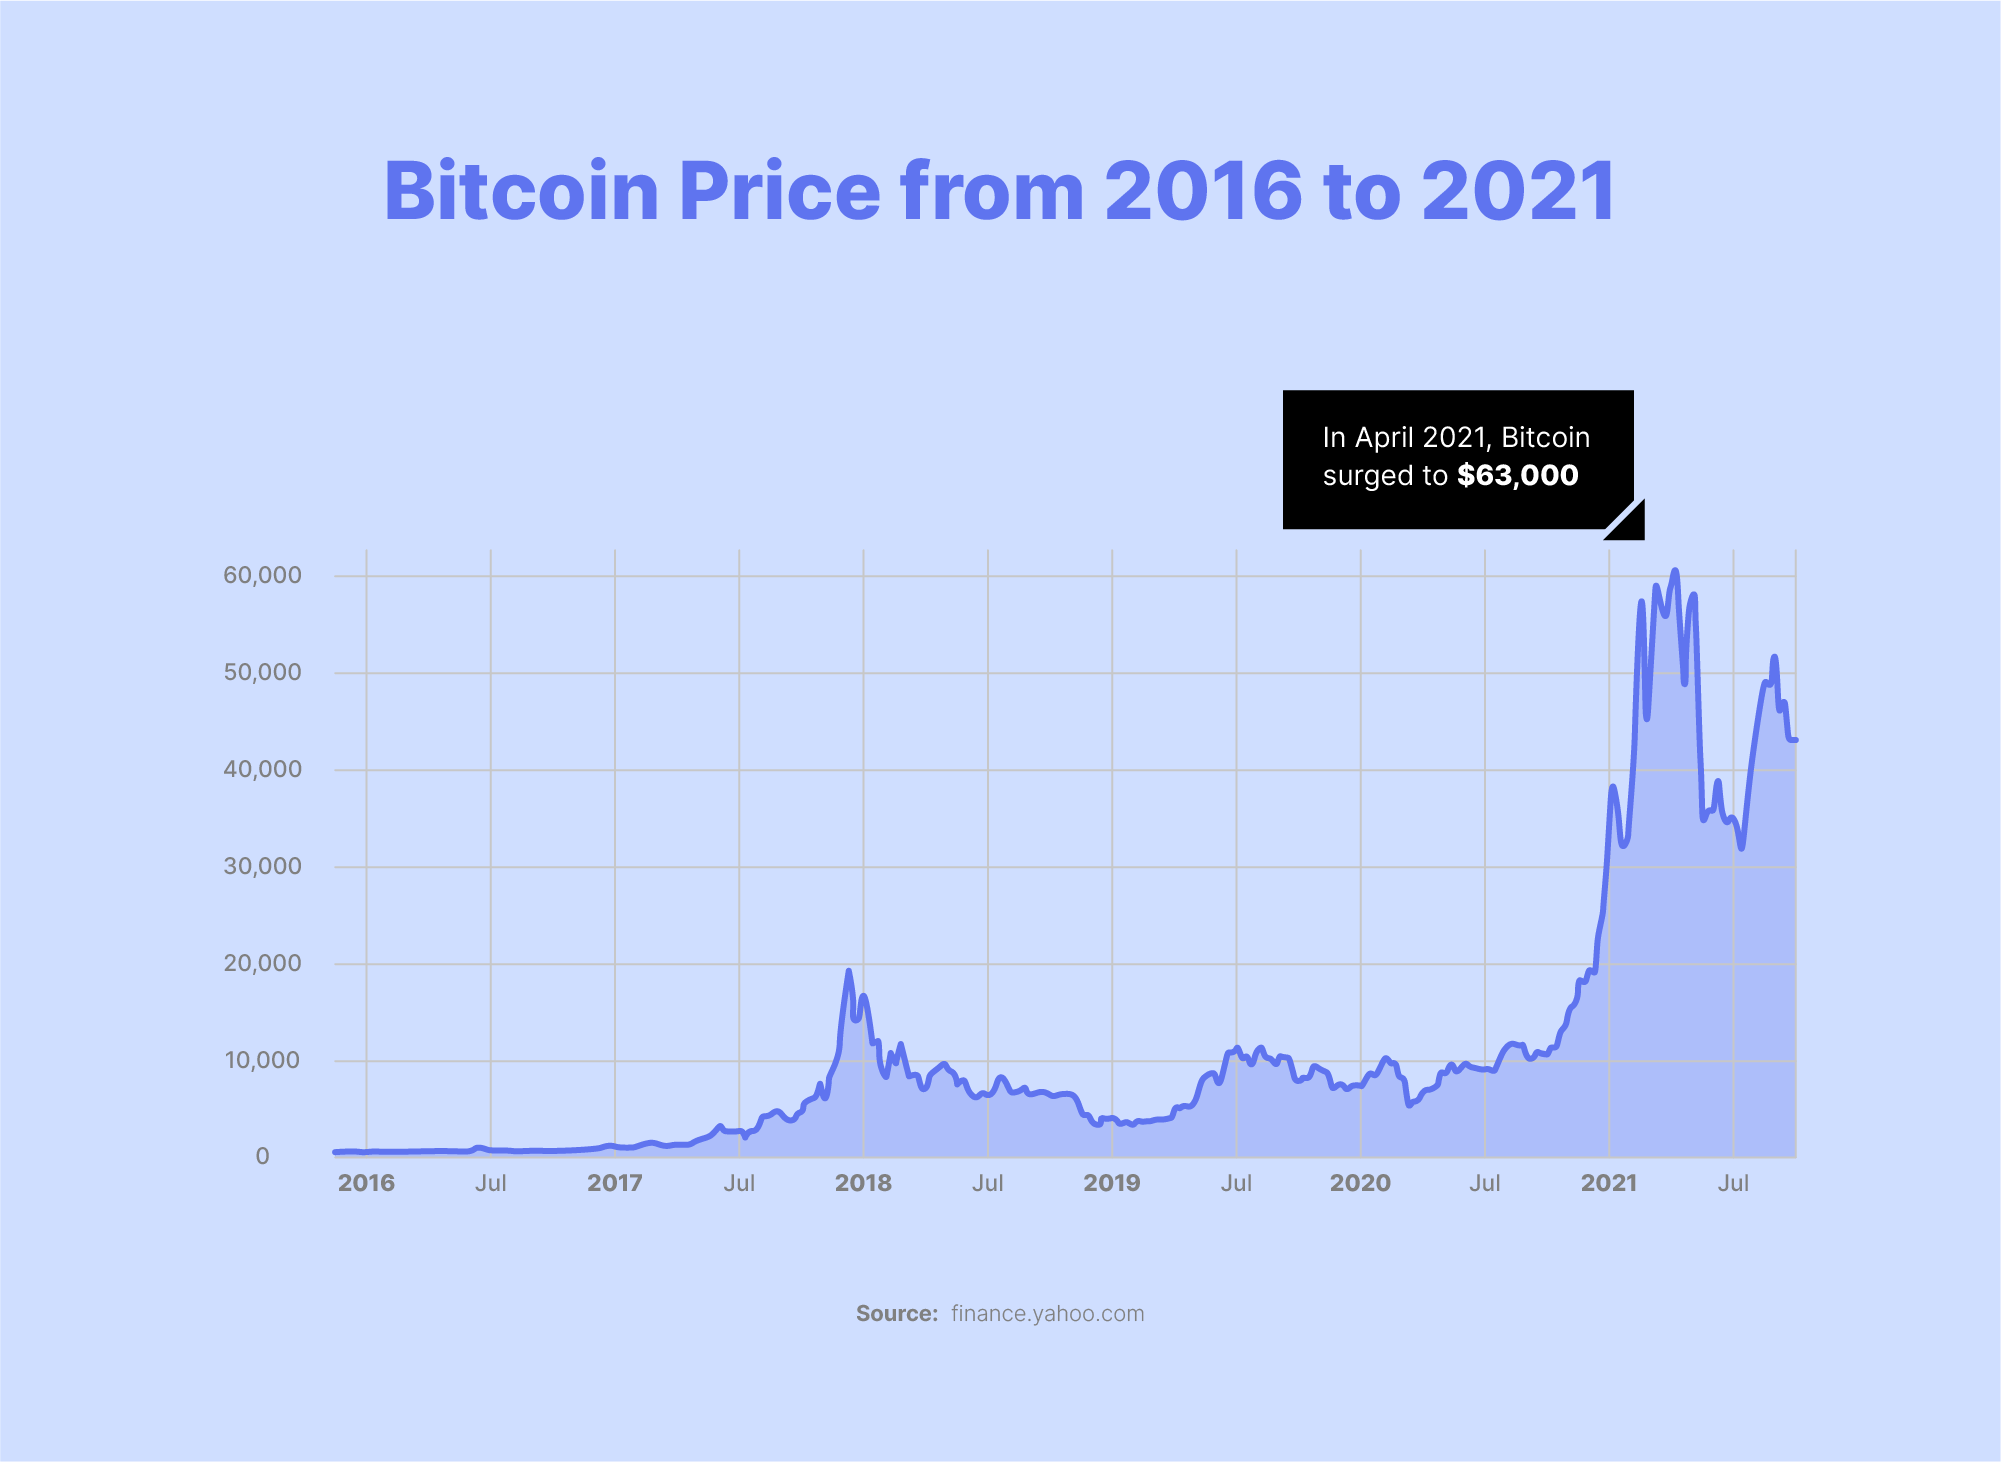 bitcoin price from 2016 to 2021